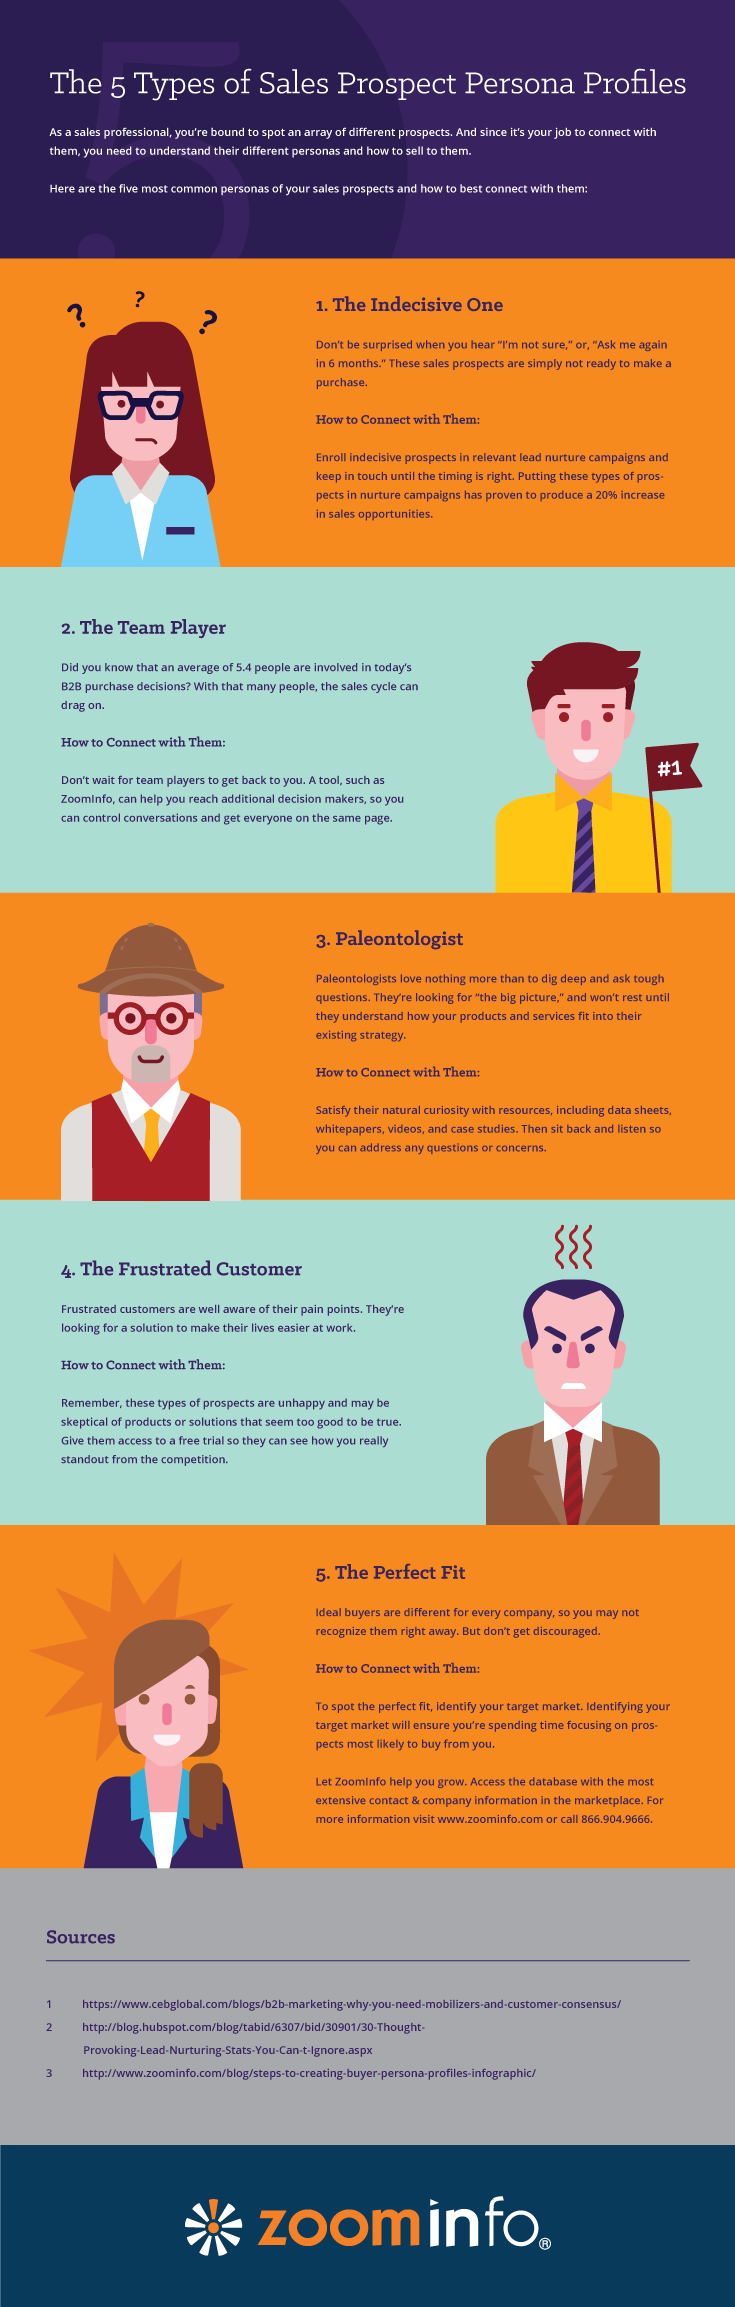 The 5 Types of Sales Prospect Persona Profiles